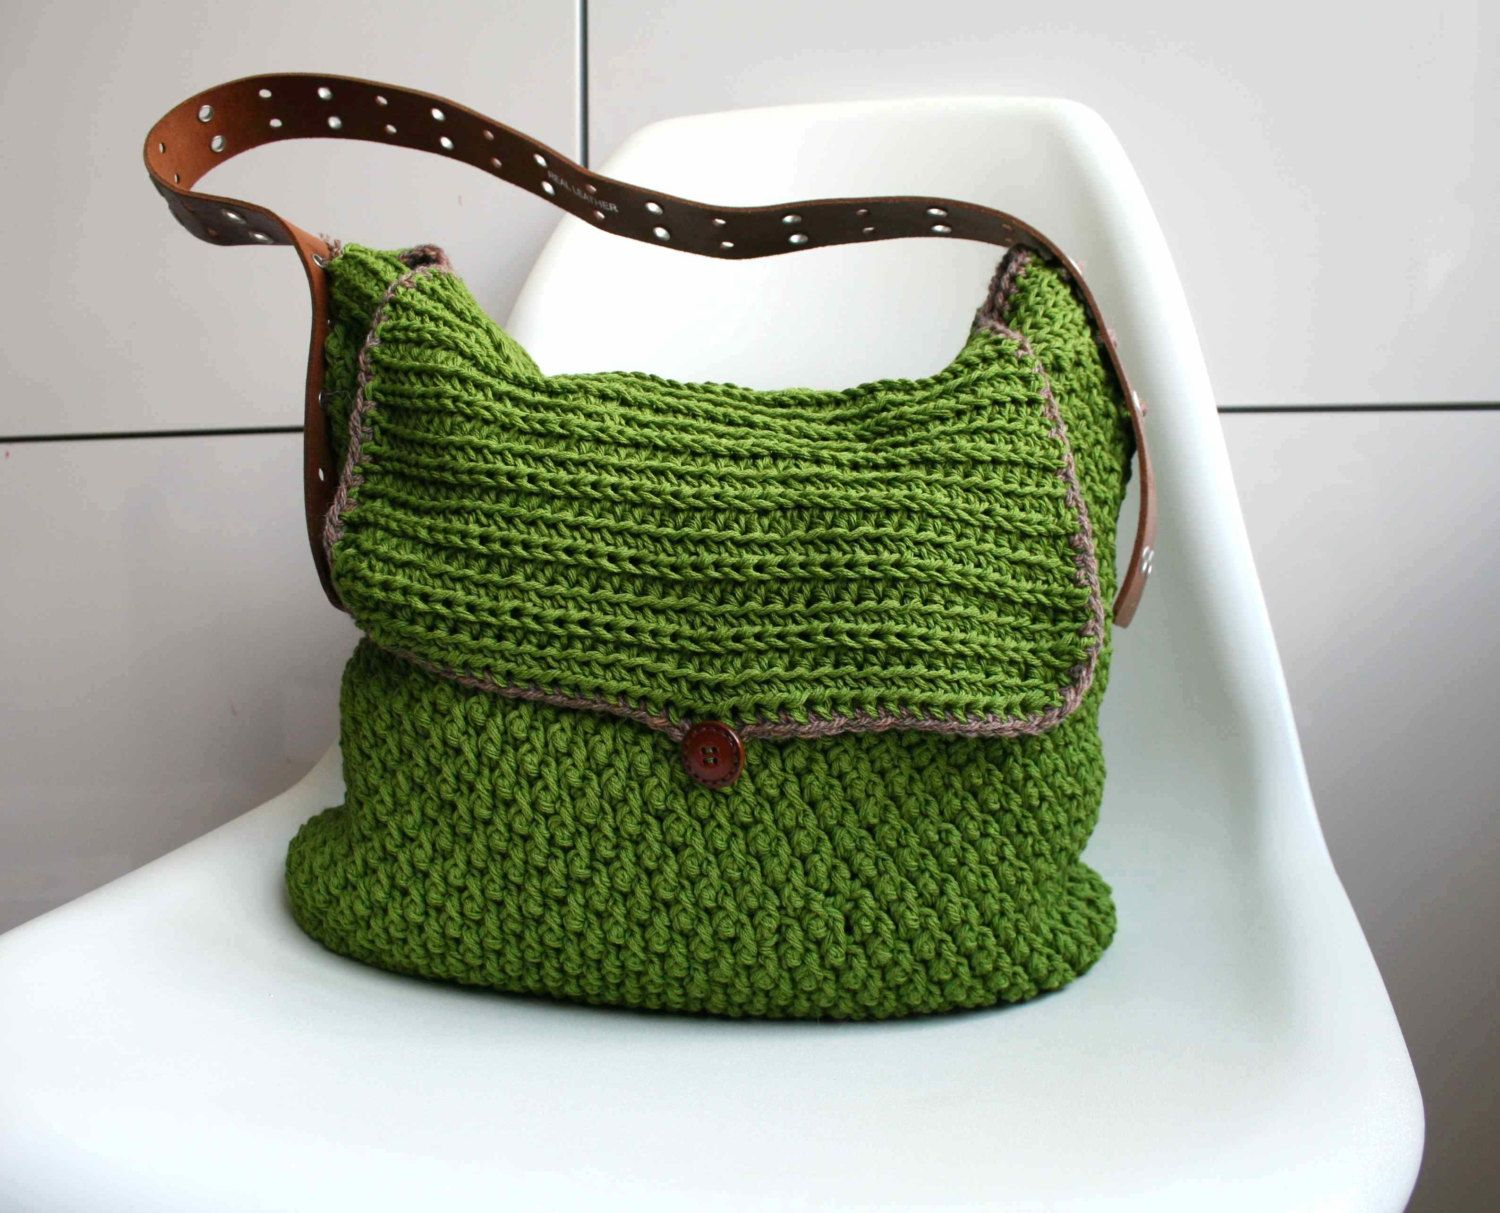 Crochet pattern crochet bag pattern Leather handle carry all crochet ...